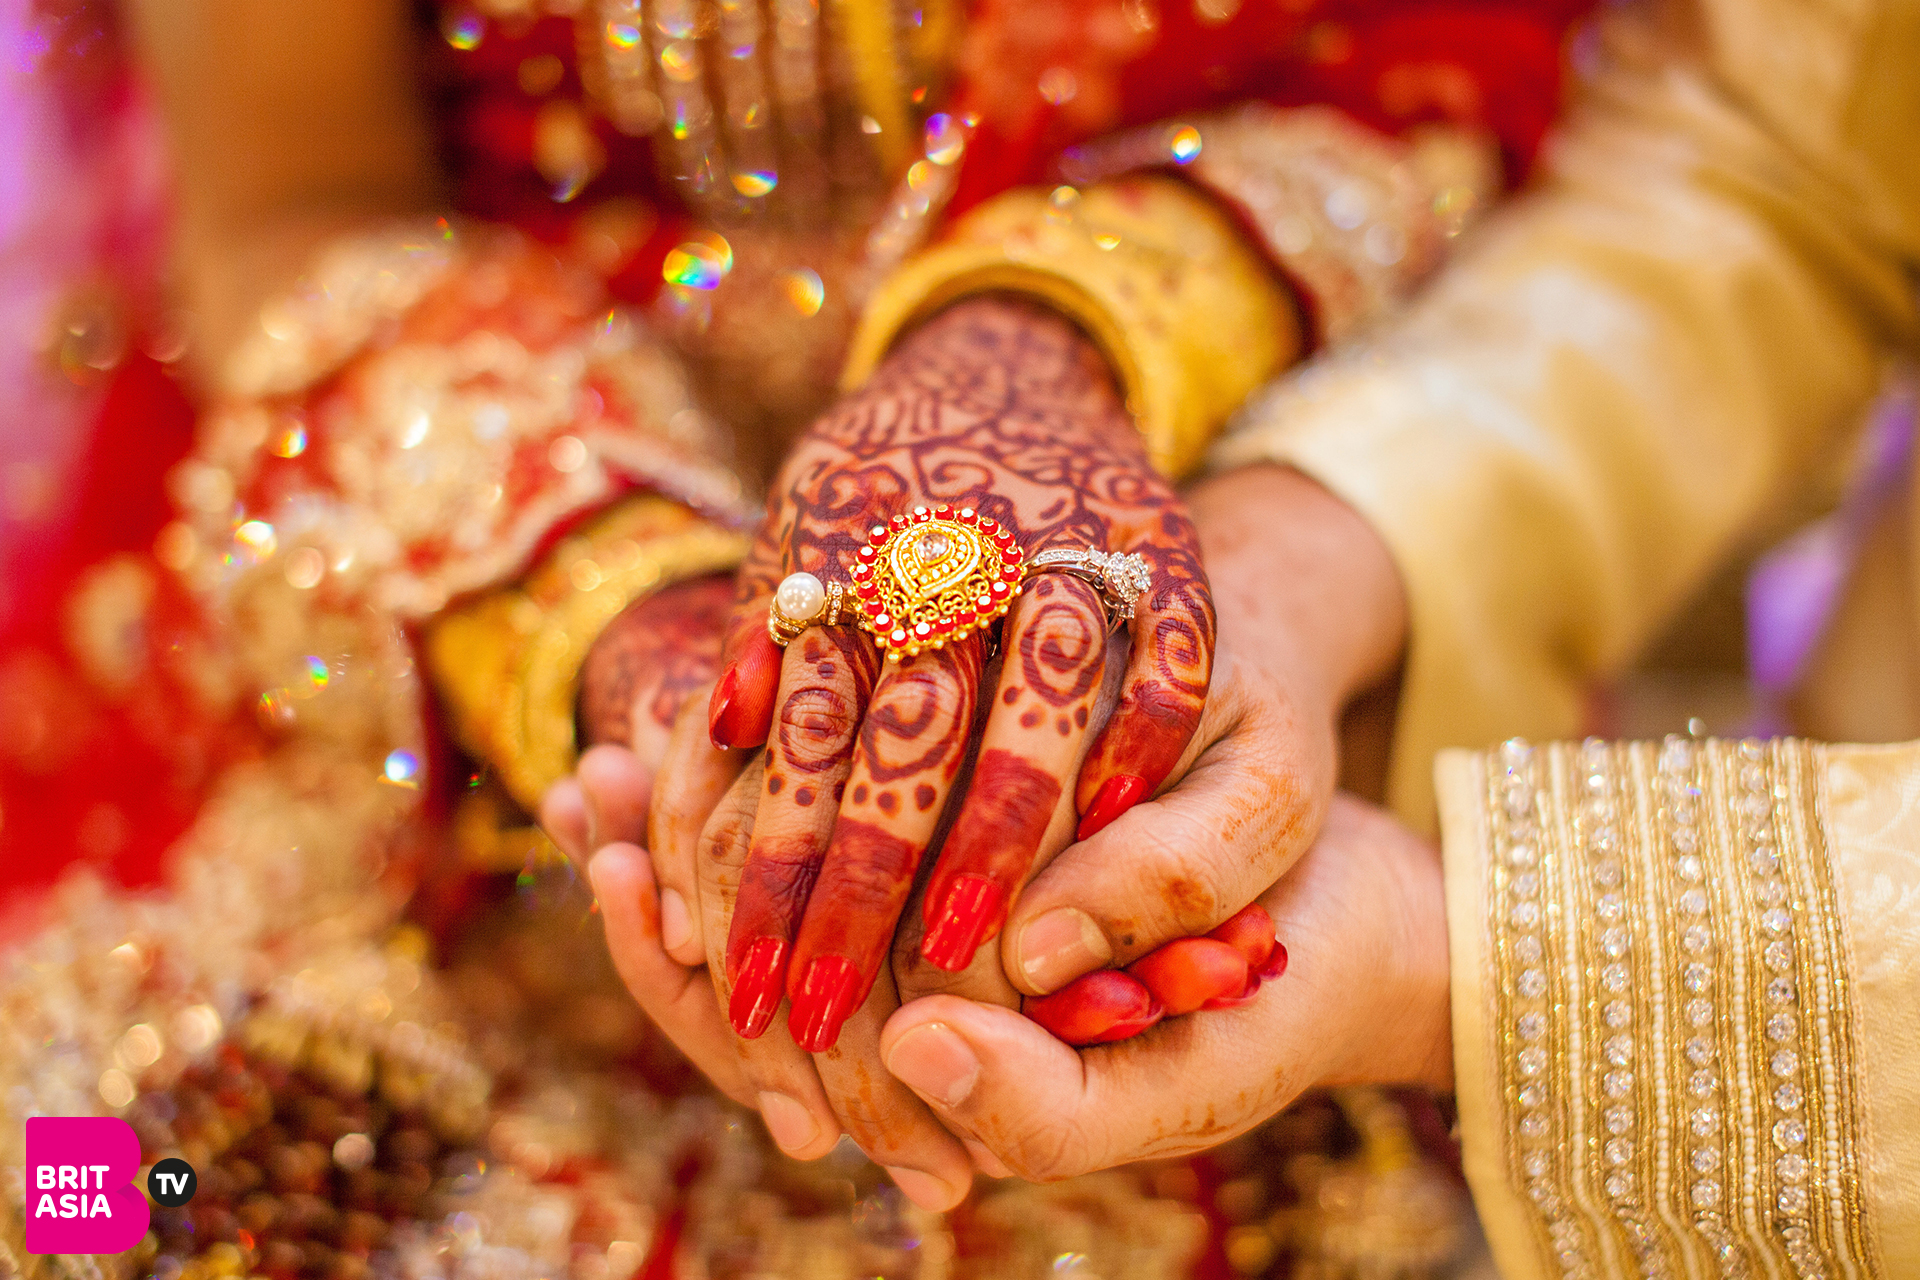 Wedding season is well and truly underway! One of the hardest tasks you may be facing is picking the right song for your first dance. Having to choose a sentimental song that means something to both of you can be a daunting task. We've put together a list of 10 Bollywood and Punjabi songs that would make the perfect first dance song.